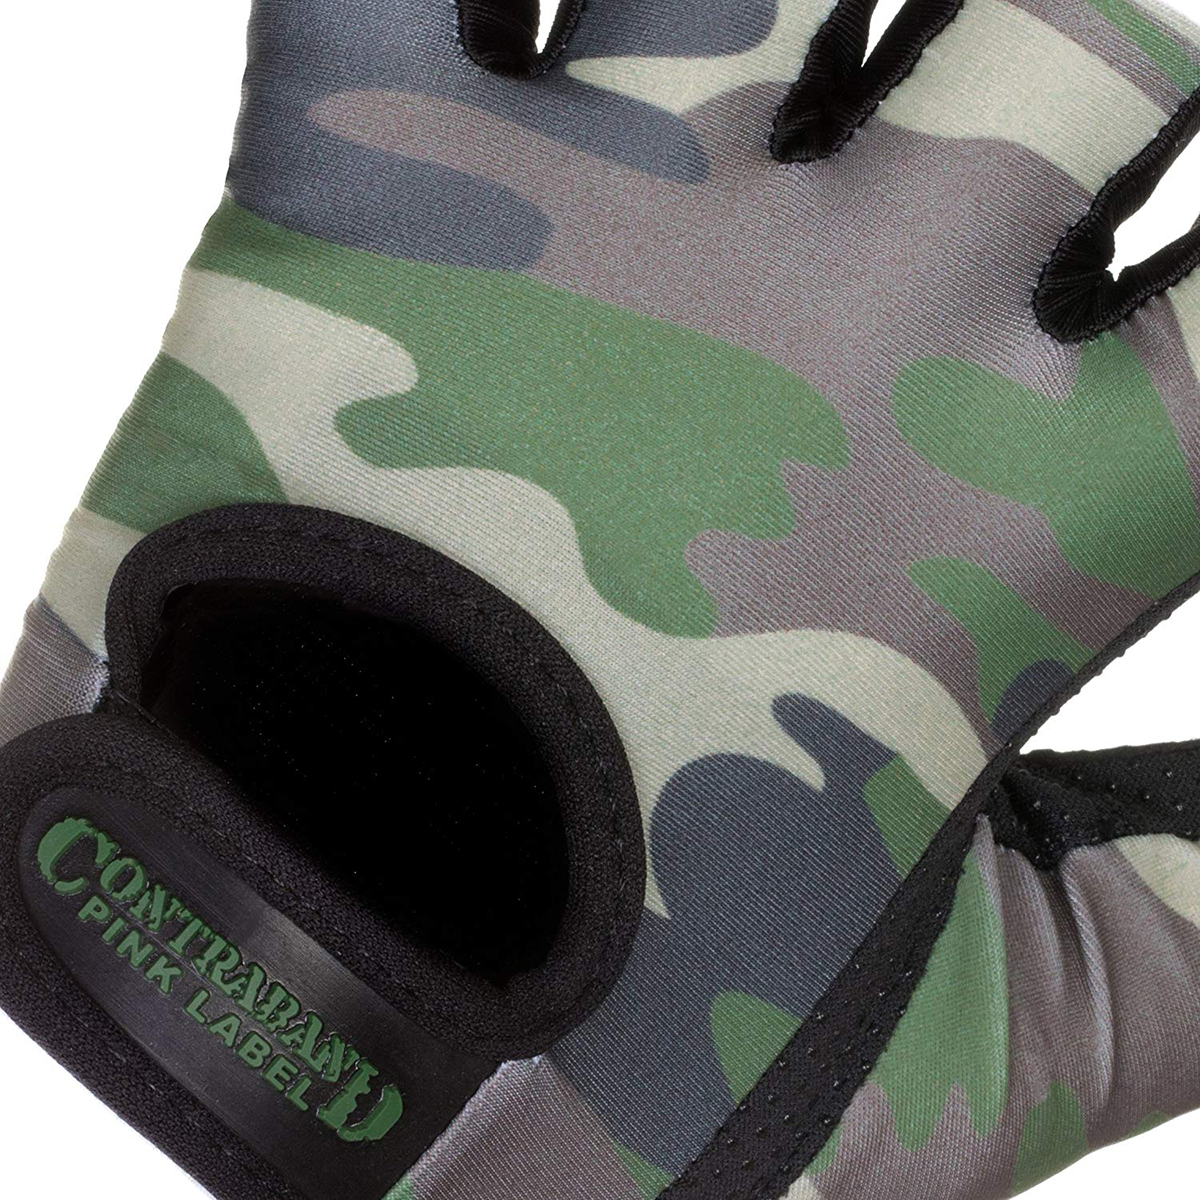 Contraband Sports 5217 Pink Label Camo Weight Lifting Gloves